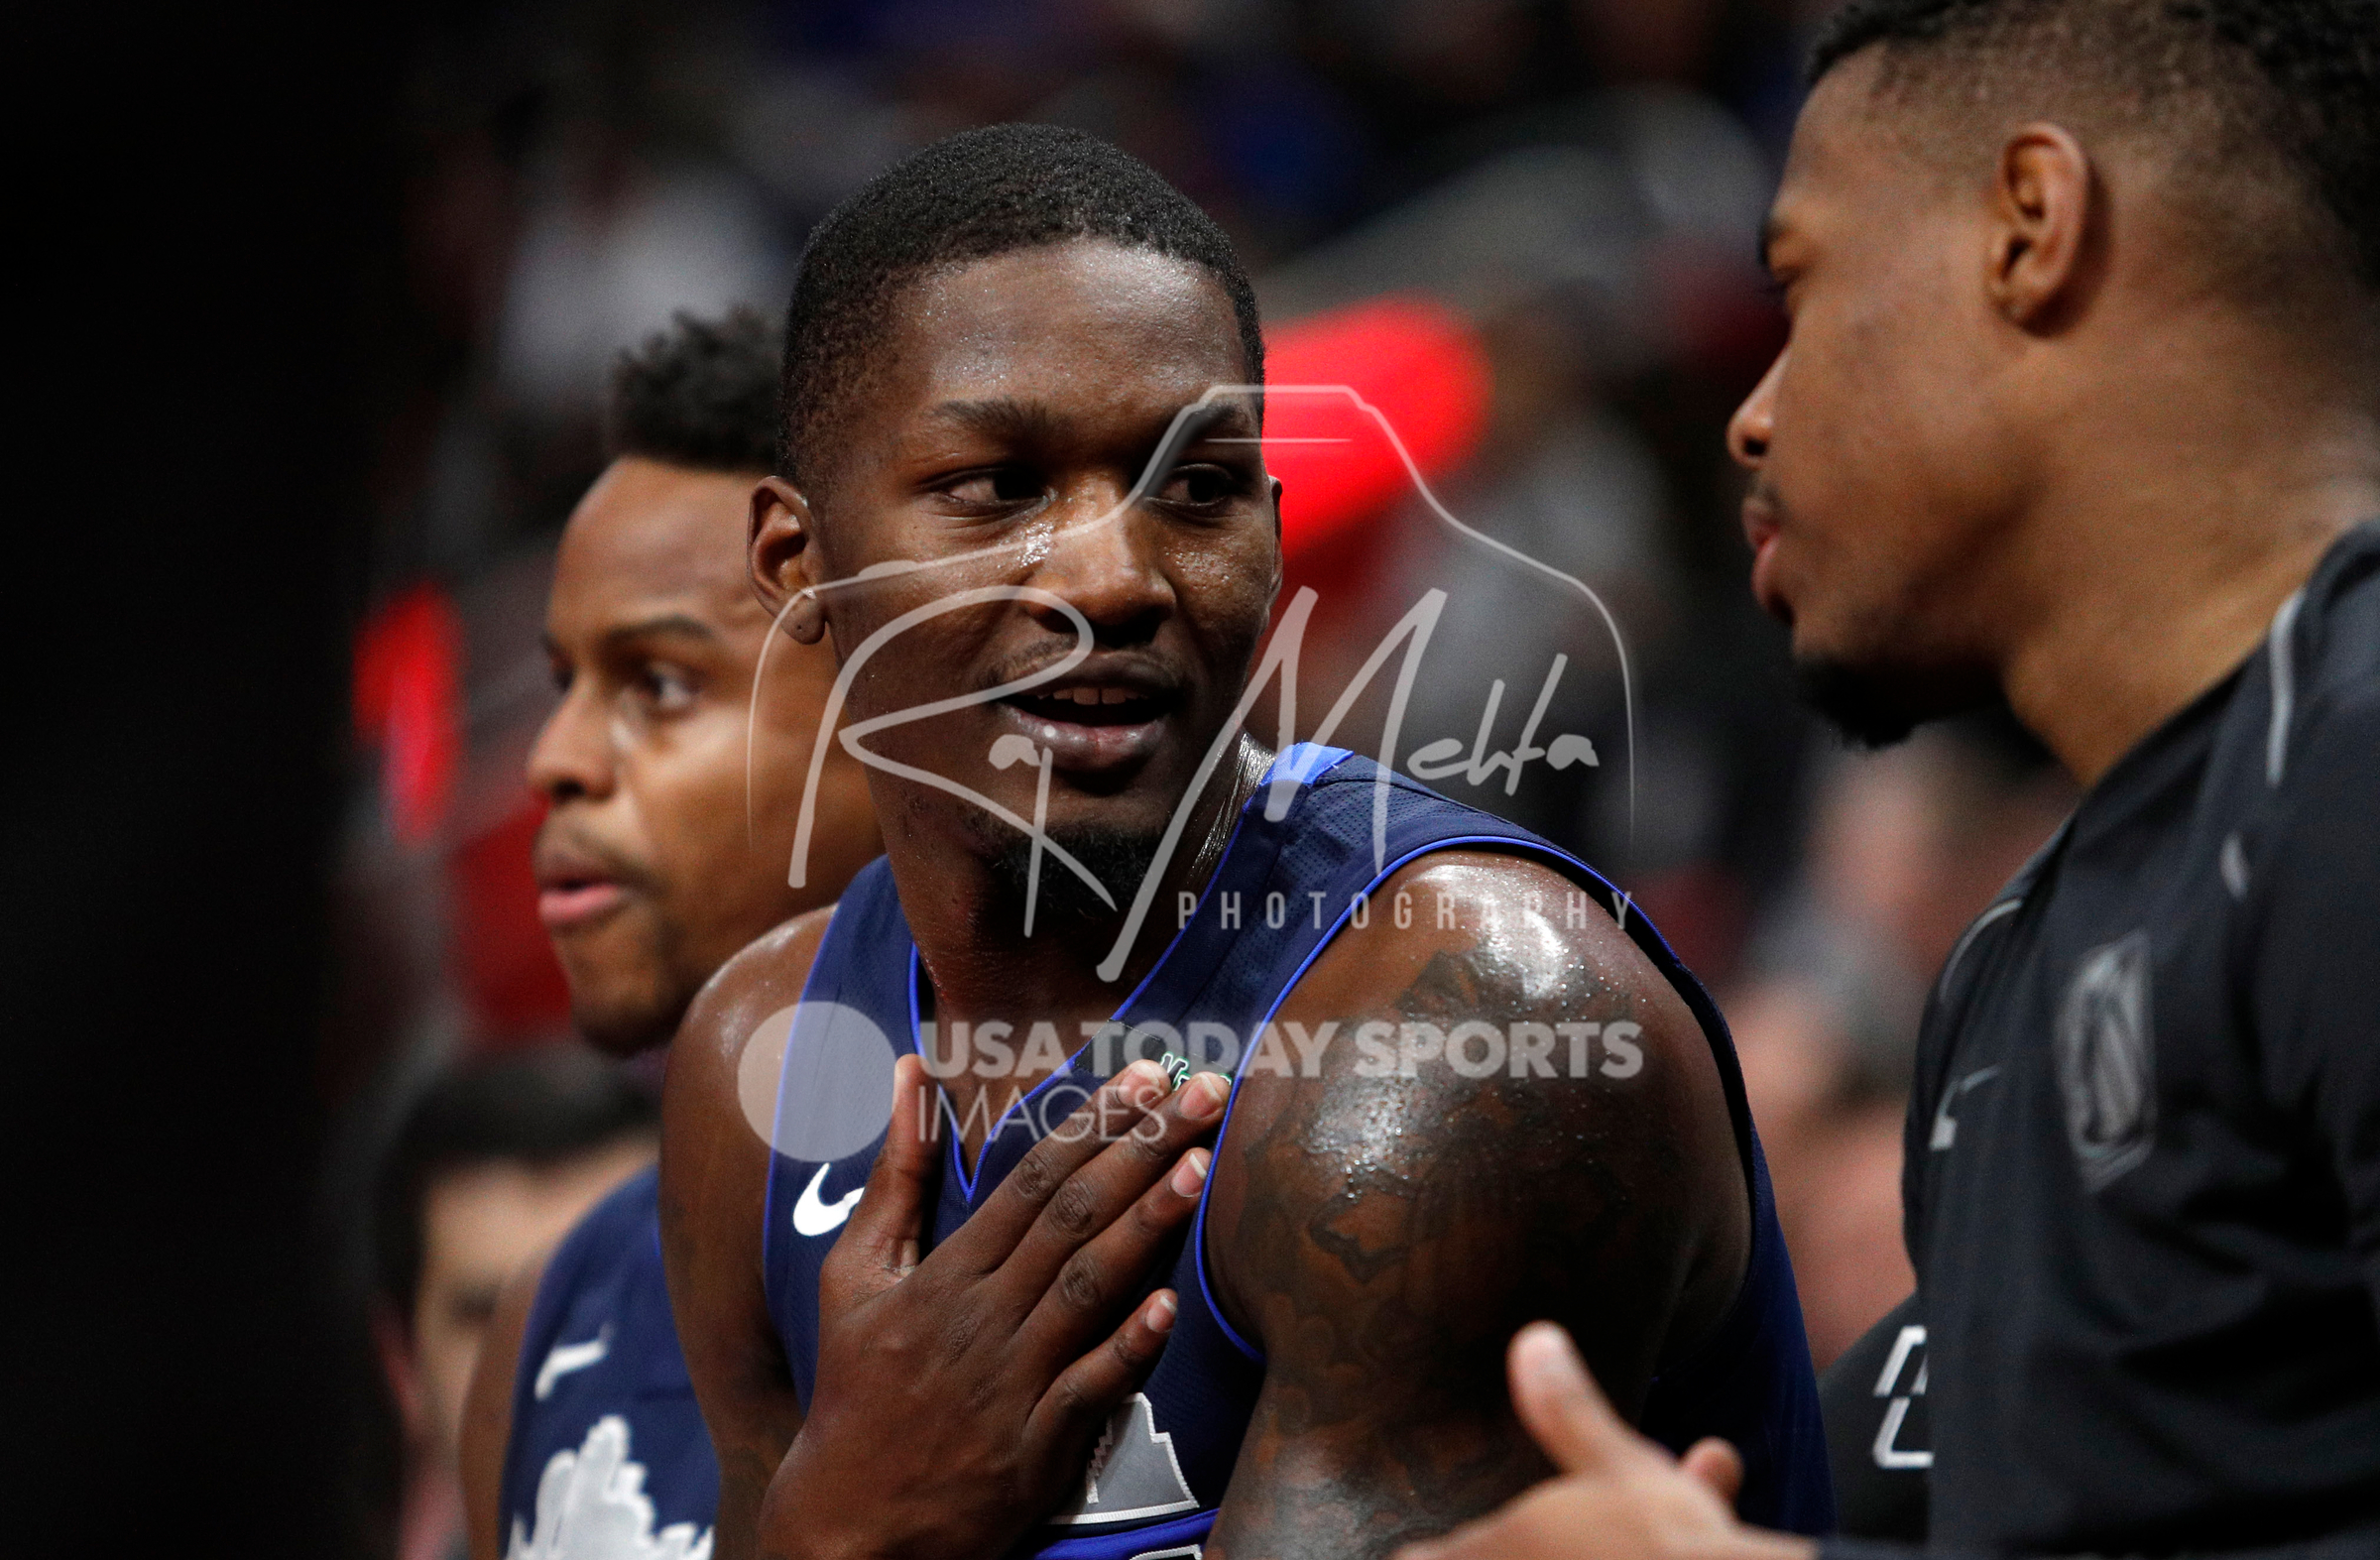 Apr 6, 2018; Detroit, MI, USA; Dallas Mavericks forward Dorian Finney-Smith (10) talks on the bench during the second quarter against the Detroit Pistons at Little Caesars Arena. Mandatory Credit: Raj Mehta-USA TODAY Sports